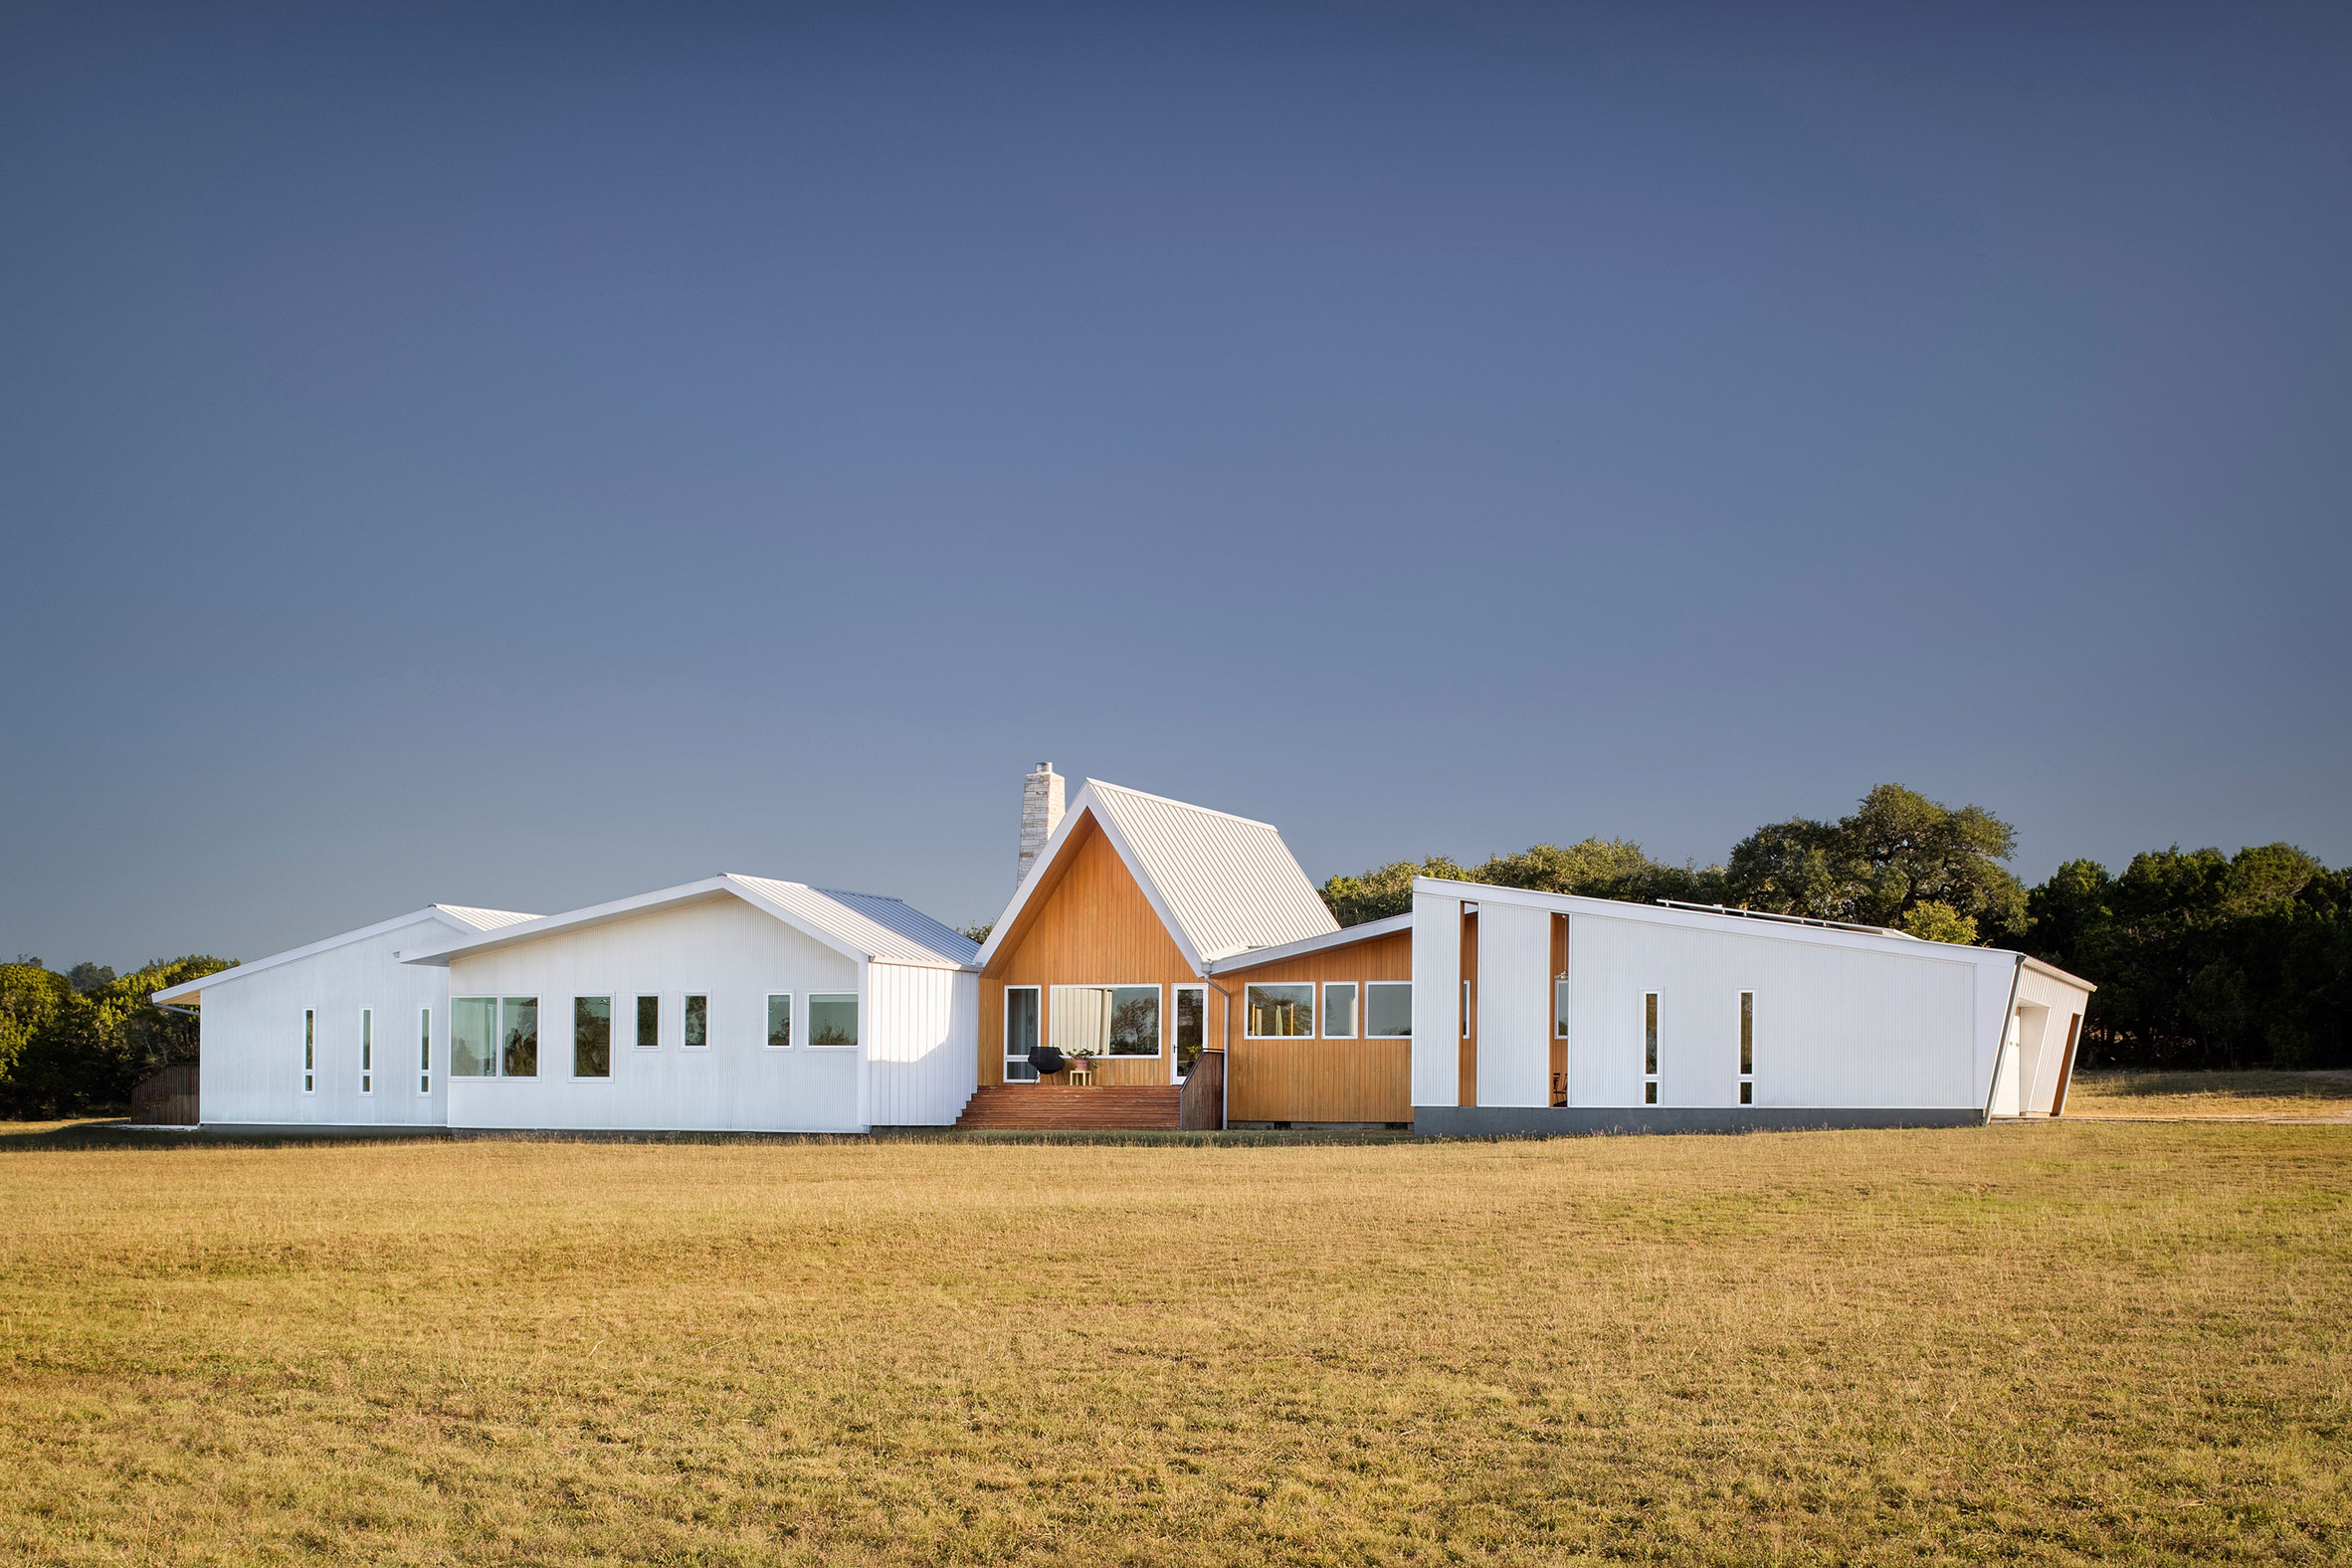 Cost-efficient modern farmhouse embraces sustainability